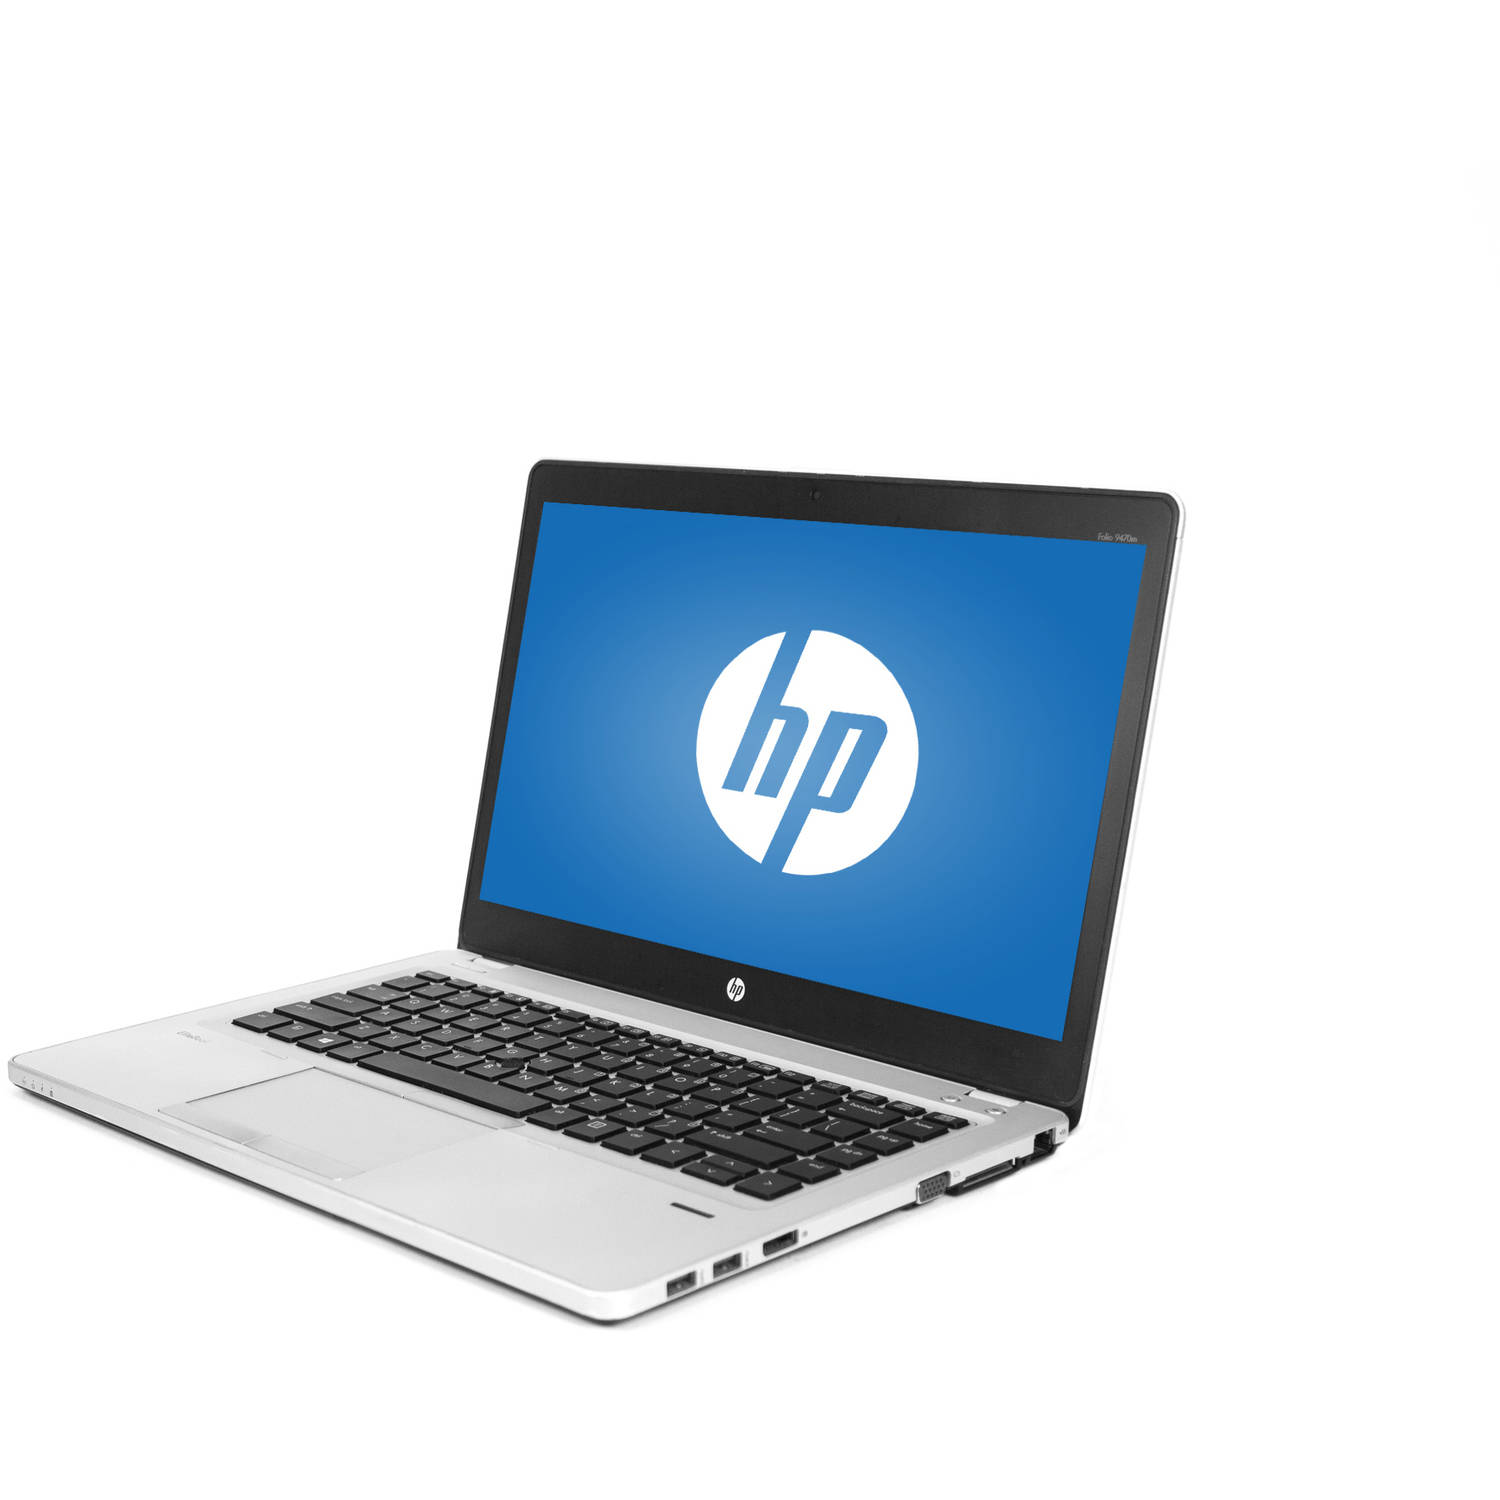 "Refurbished HP Ultrabook Silver 14"" EliteBook Folio 9470M WA5-0887 Laptop PC with Intel Core i5-3427U Processor, 8GB Memory, 320GB Hard Drive and Windows 10 Pro"